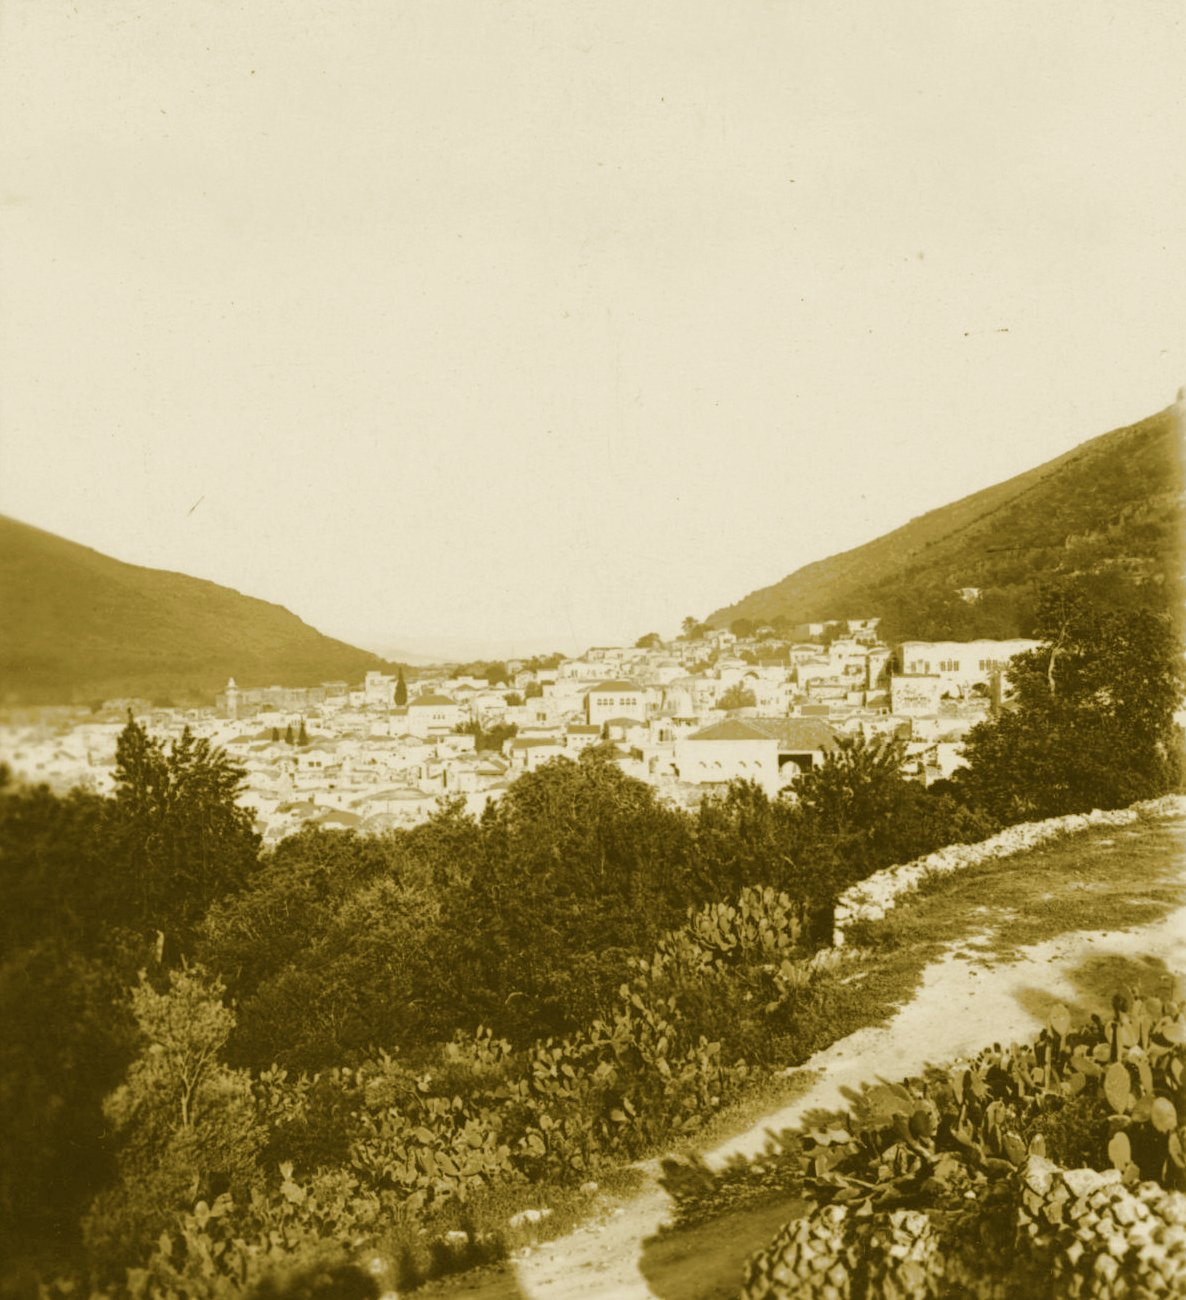 Nablus - نابلس : NABLUS - Late 19th, early 20th c. 94